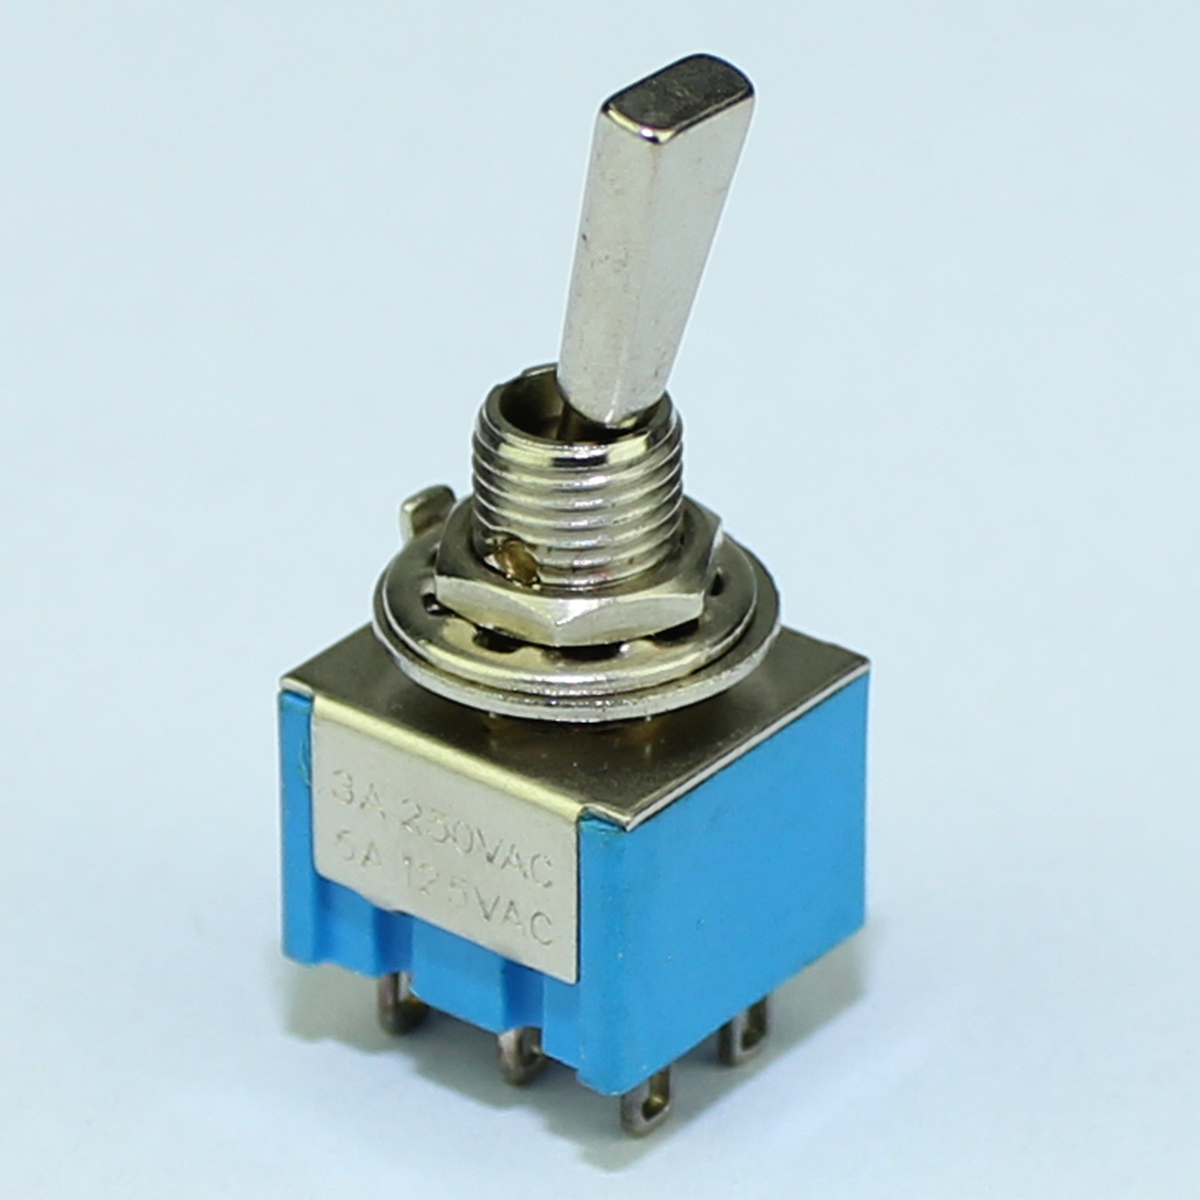 Blue Mini Guitar Toggle Switch 3 pin /& 6 pin 6A 125V ON-ON sold as a single item